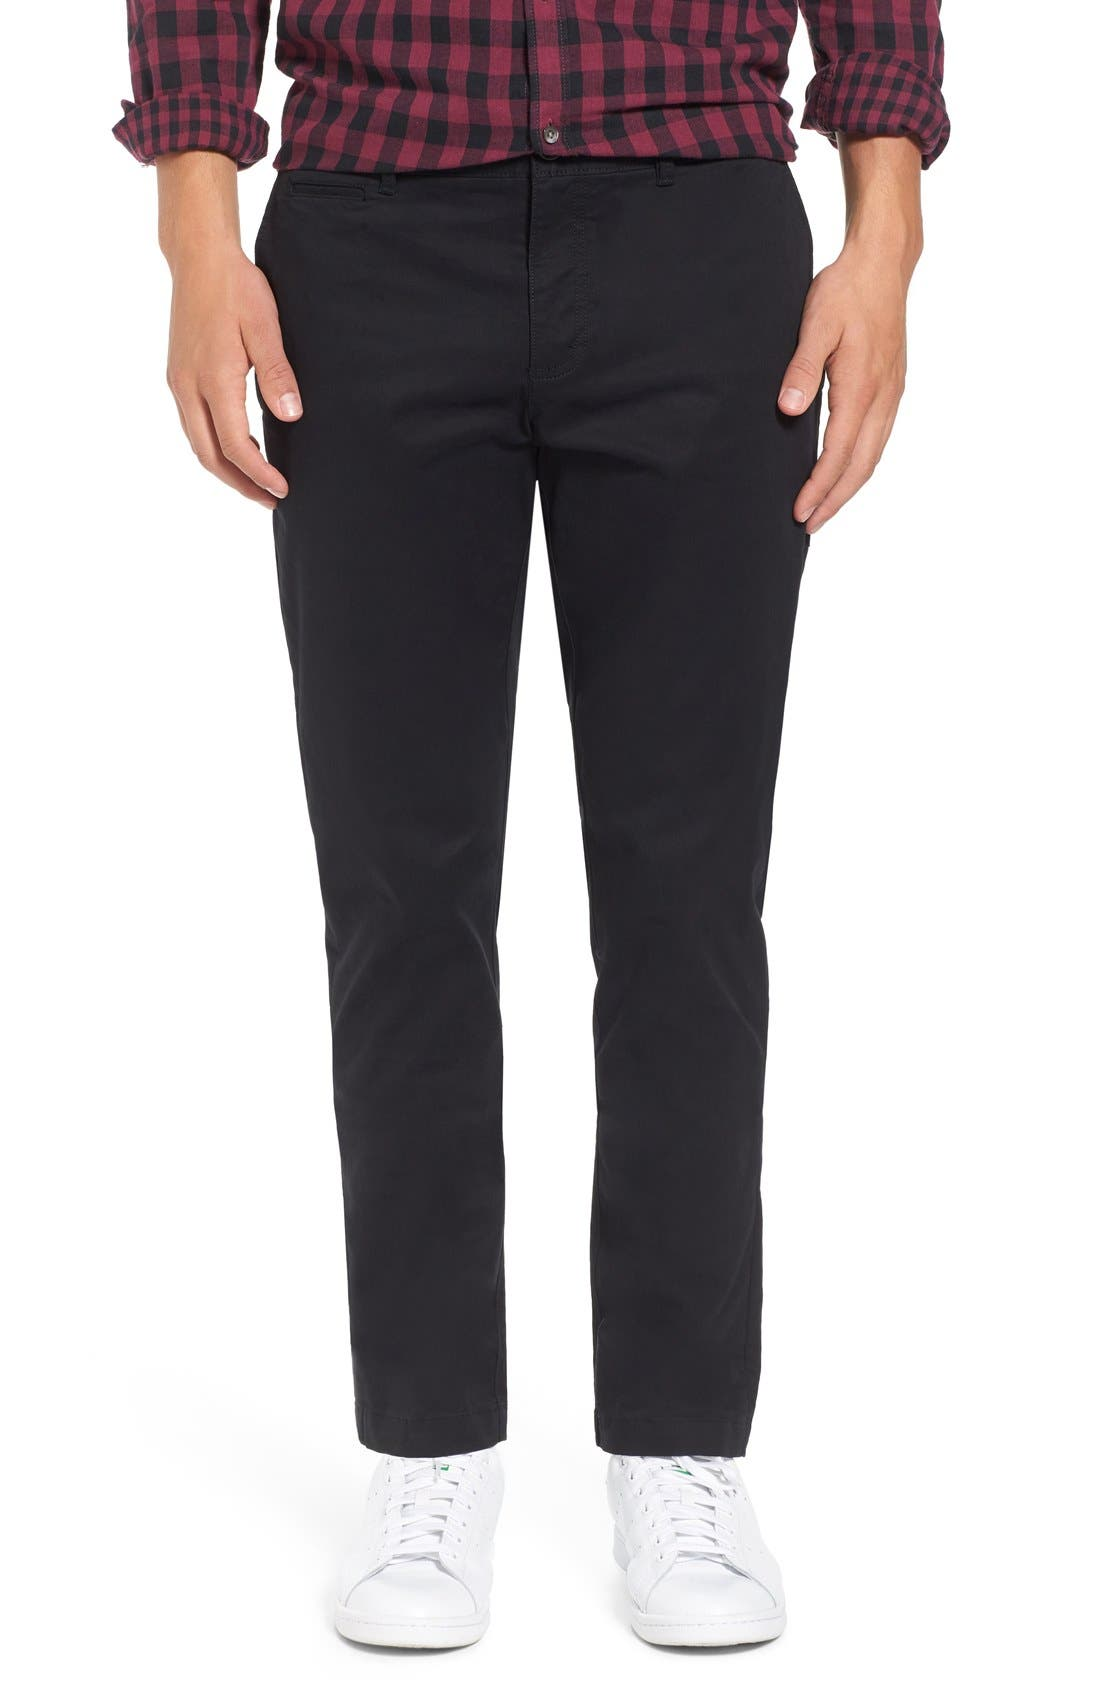 ORIGINAL PENGUIN 'P55' Slim Fit Stretch Cotton Chinos